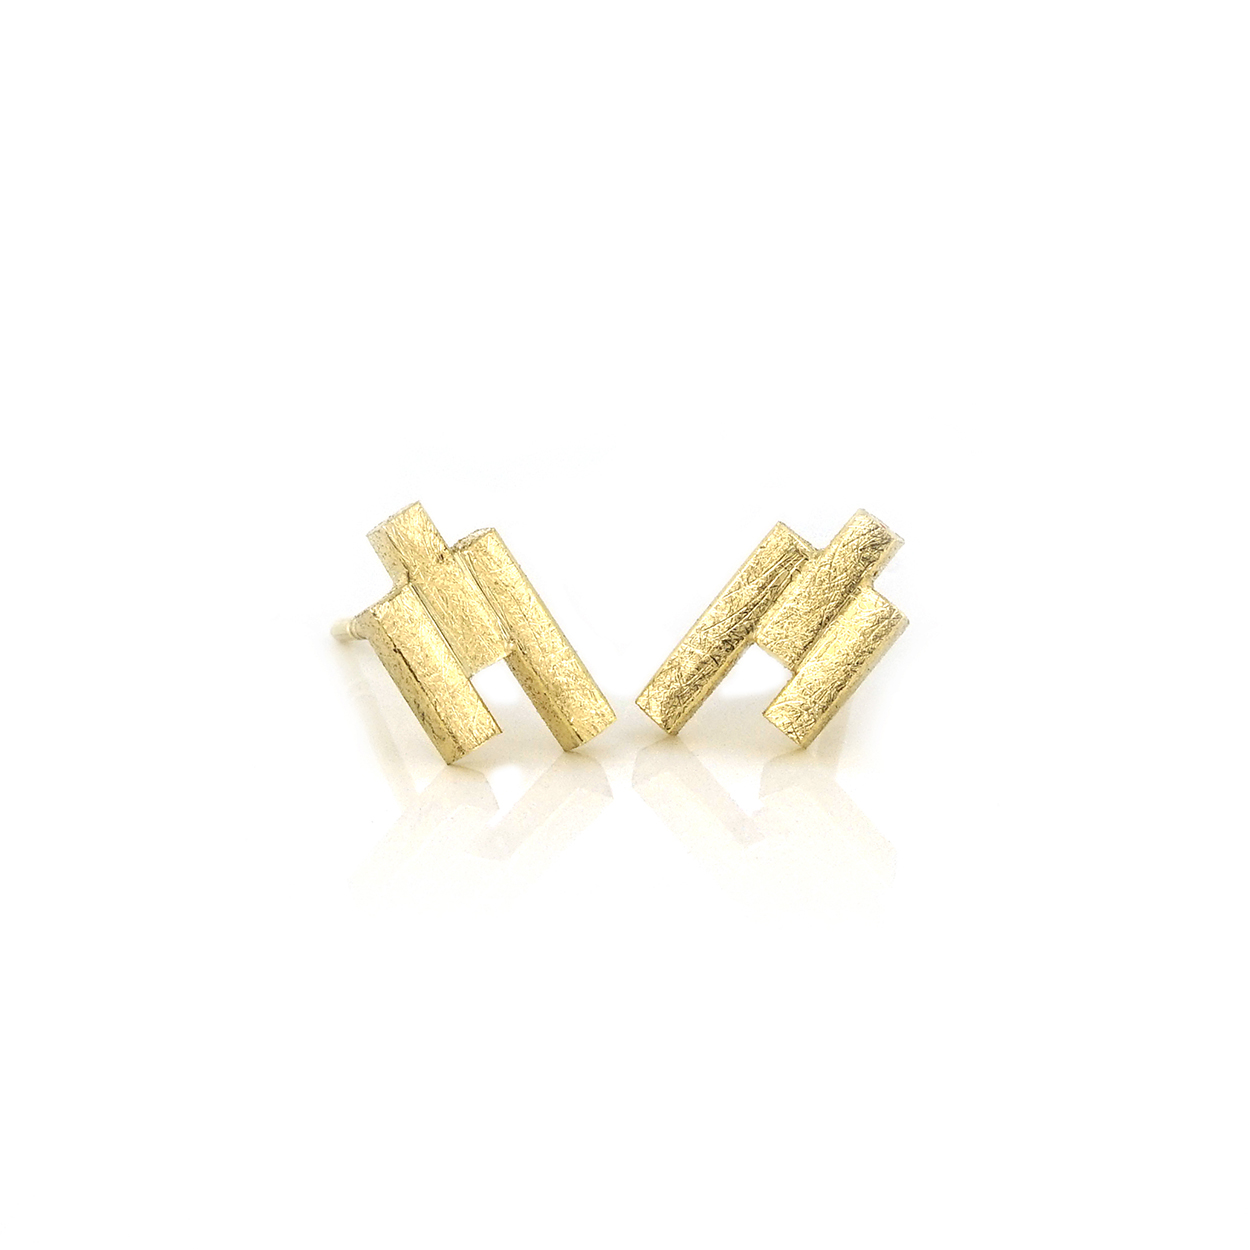 Gold bar studs - 3 bars